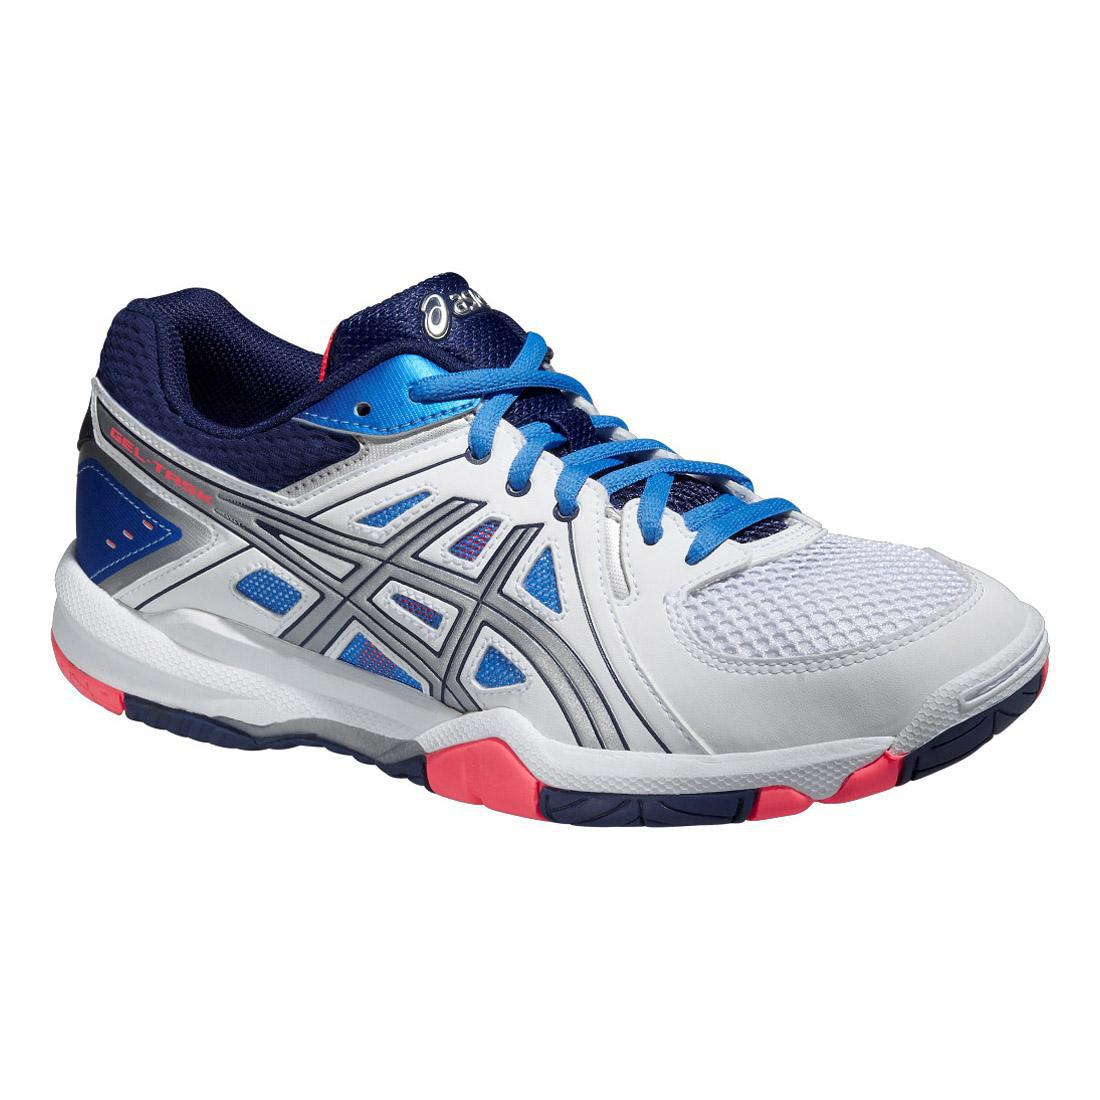 Asics Womens GEL-Task Indoor Court Shoes - White/Blue